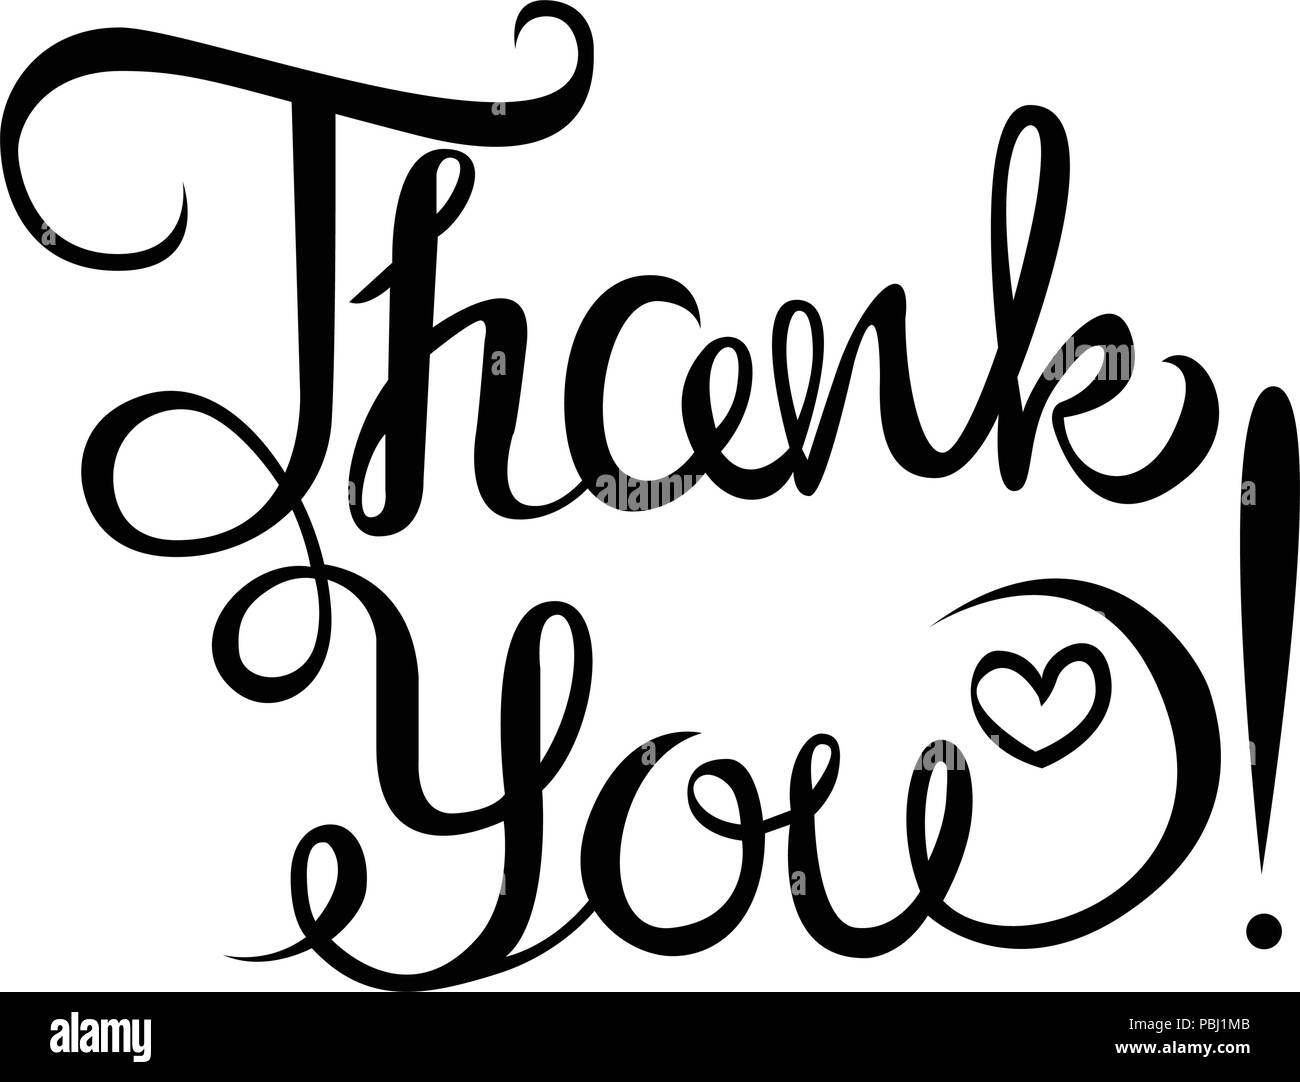 Thank you hand-drawn phrase. Lettering. vector isolated image on white background. - Stock Vector